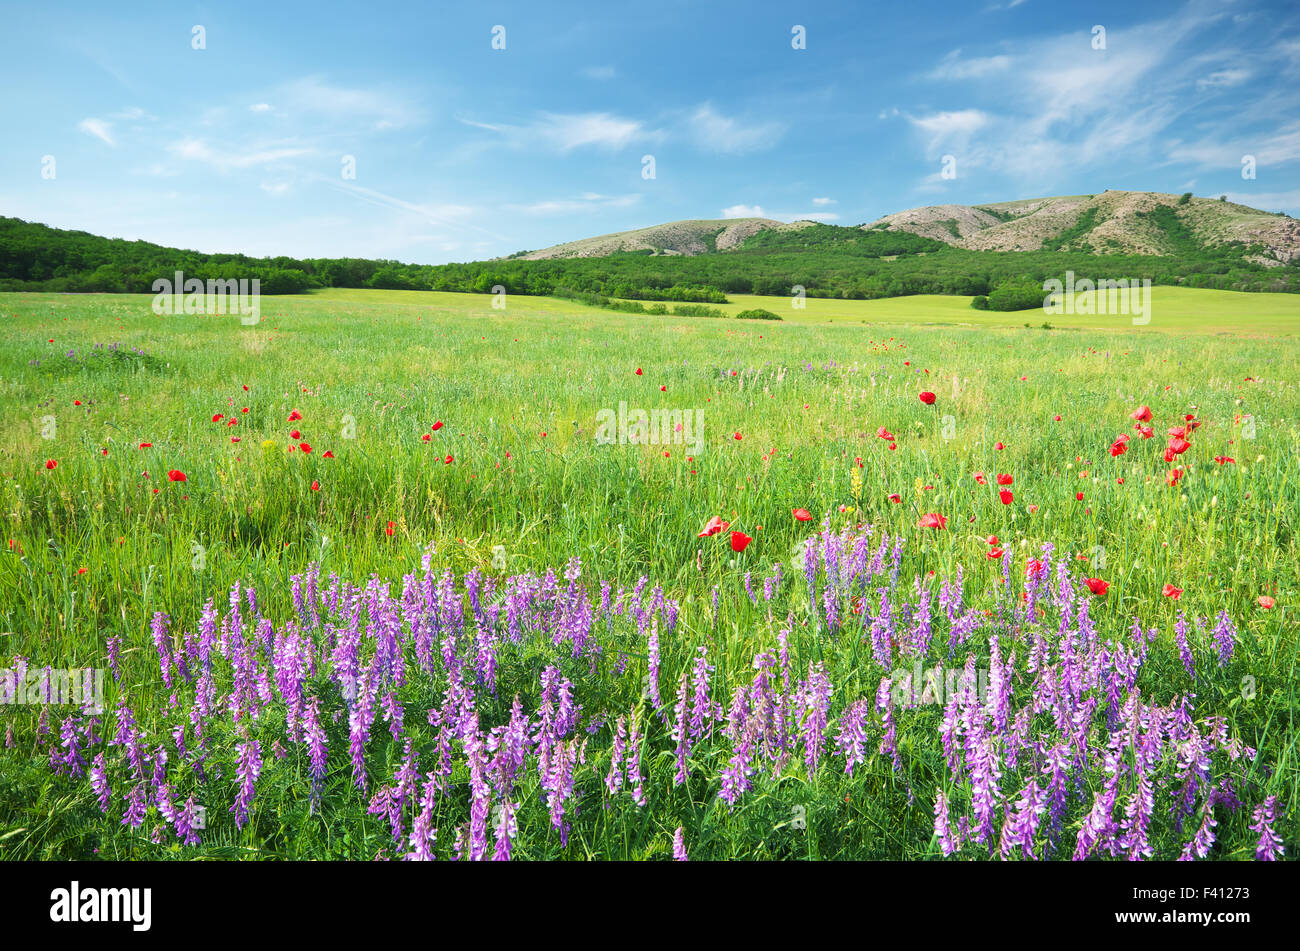 Spring meadow in meadow. Beautiful landscapes. - Stock Image